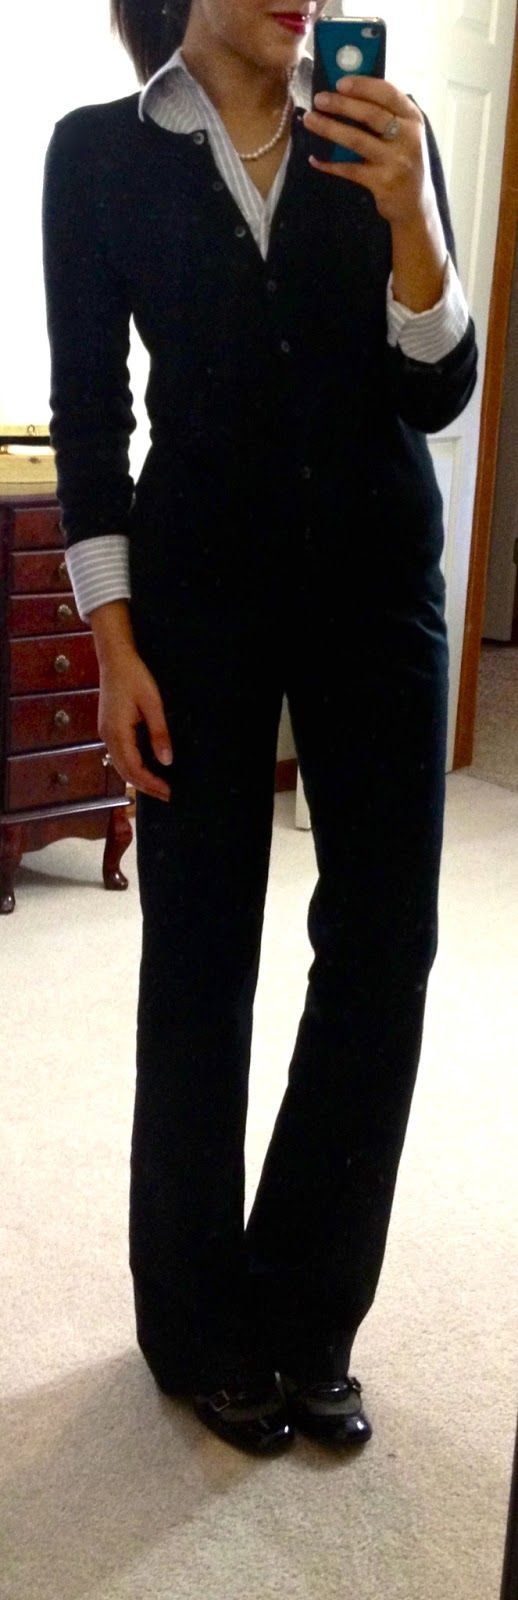 Express pinstriped button-up, Target cardi, Banana Republic outlet Martin Wool Trousers, pumps via DSW, gifted pearl necklace